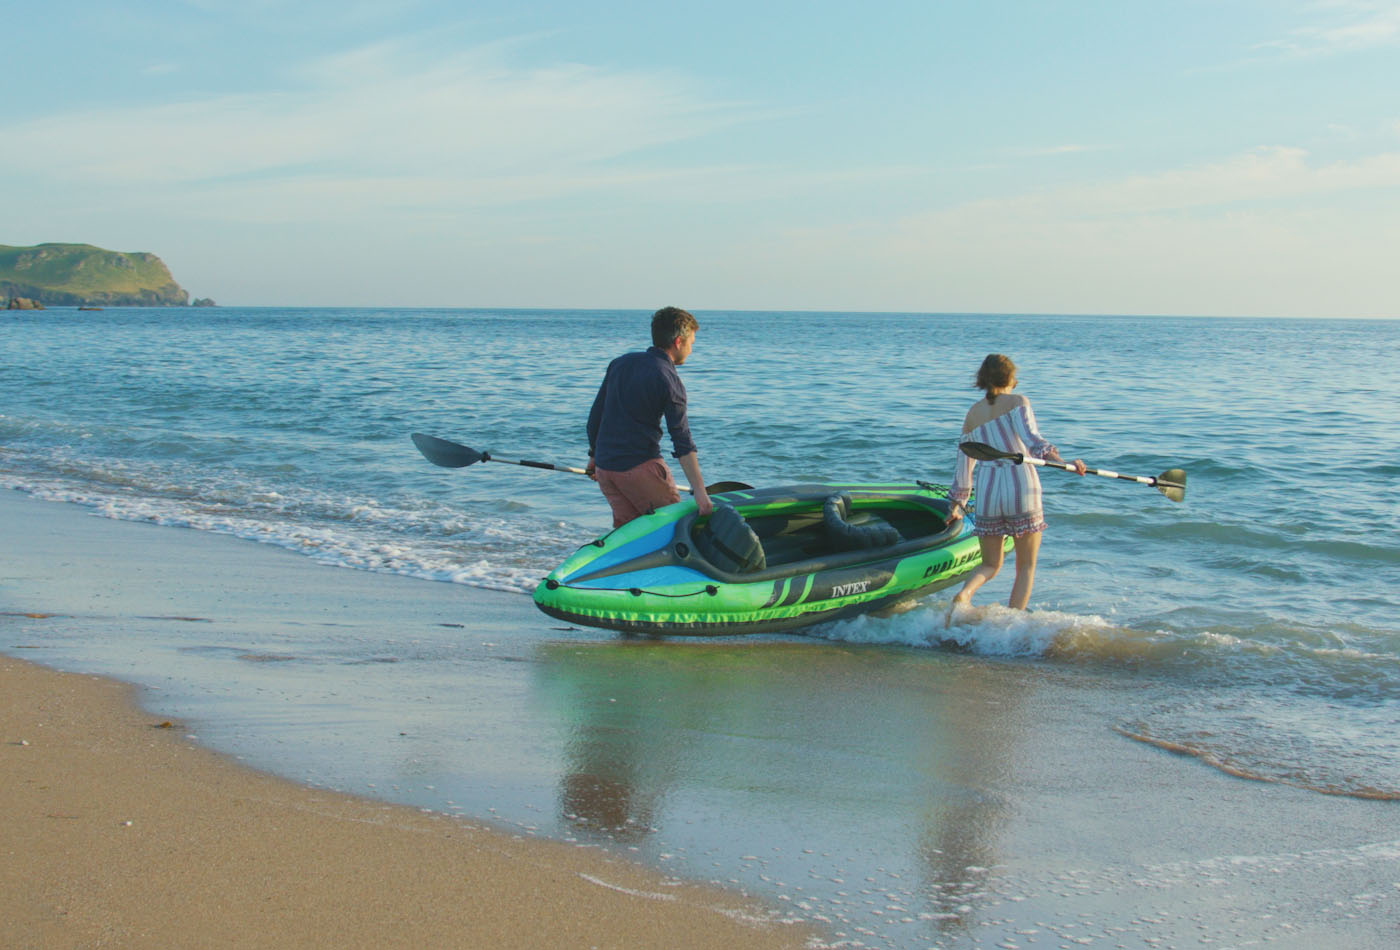 Thurlestone wellbeing holidays in South Devon - kayaking at Thurlestone Beach